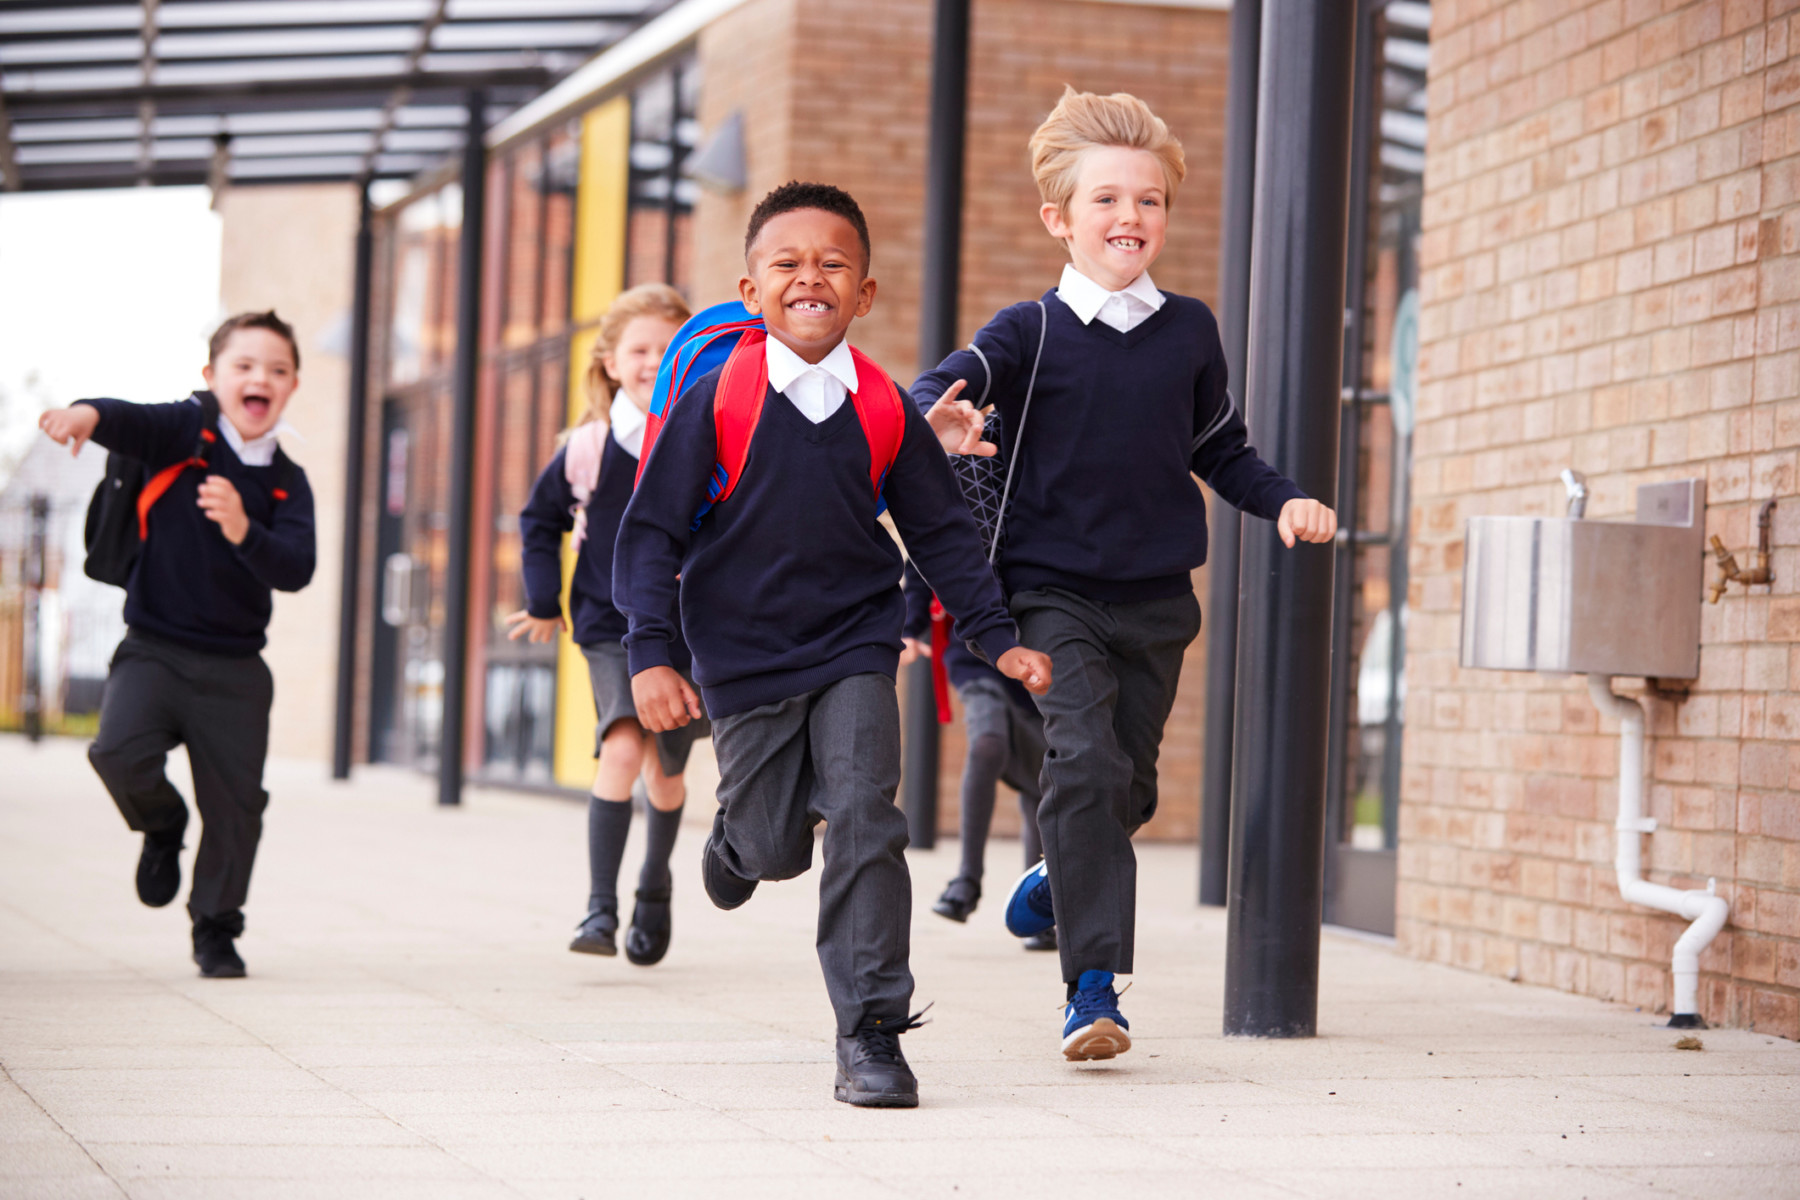 Boris Johnson has today affirmed his commitment to opening schools to all pupils in September